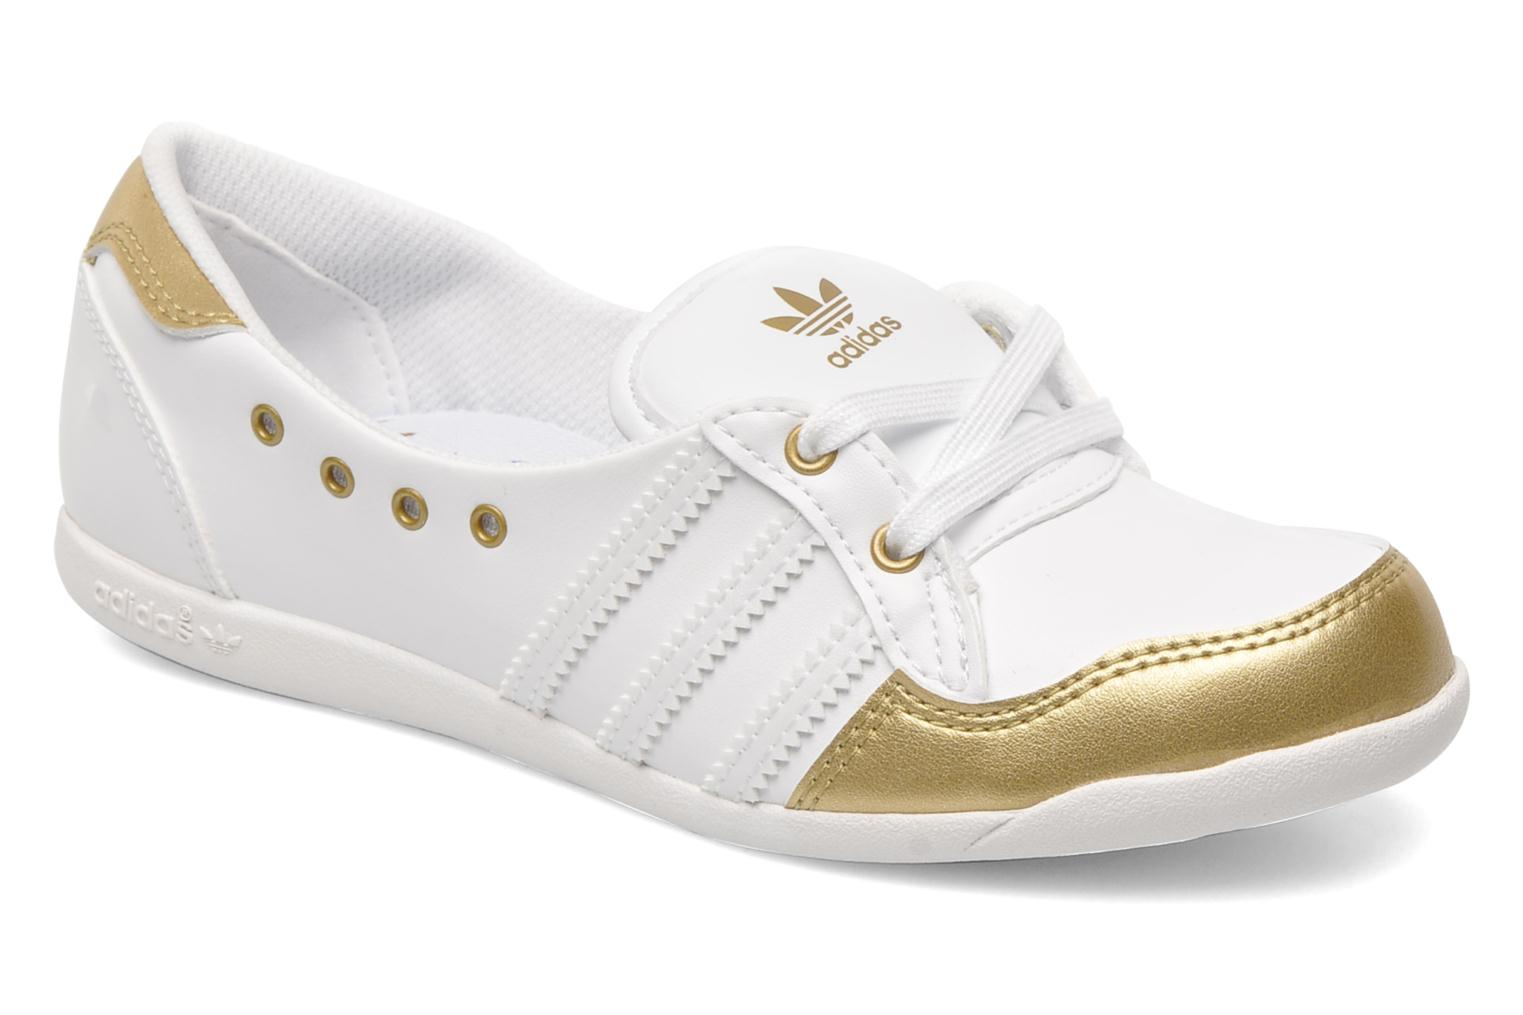 ballerine adidas slipper,ballerines adidas performance